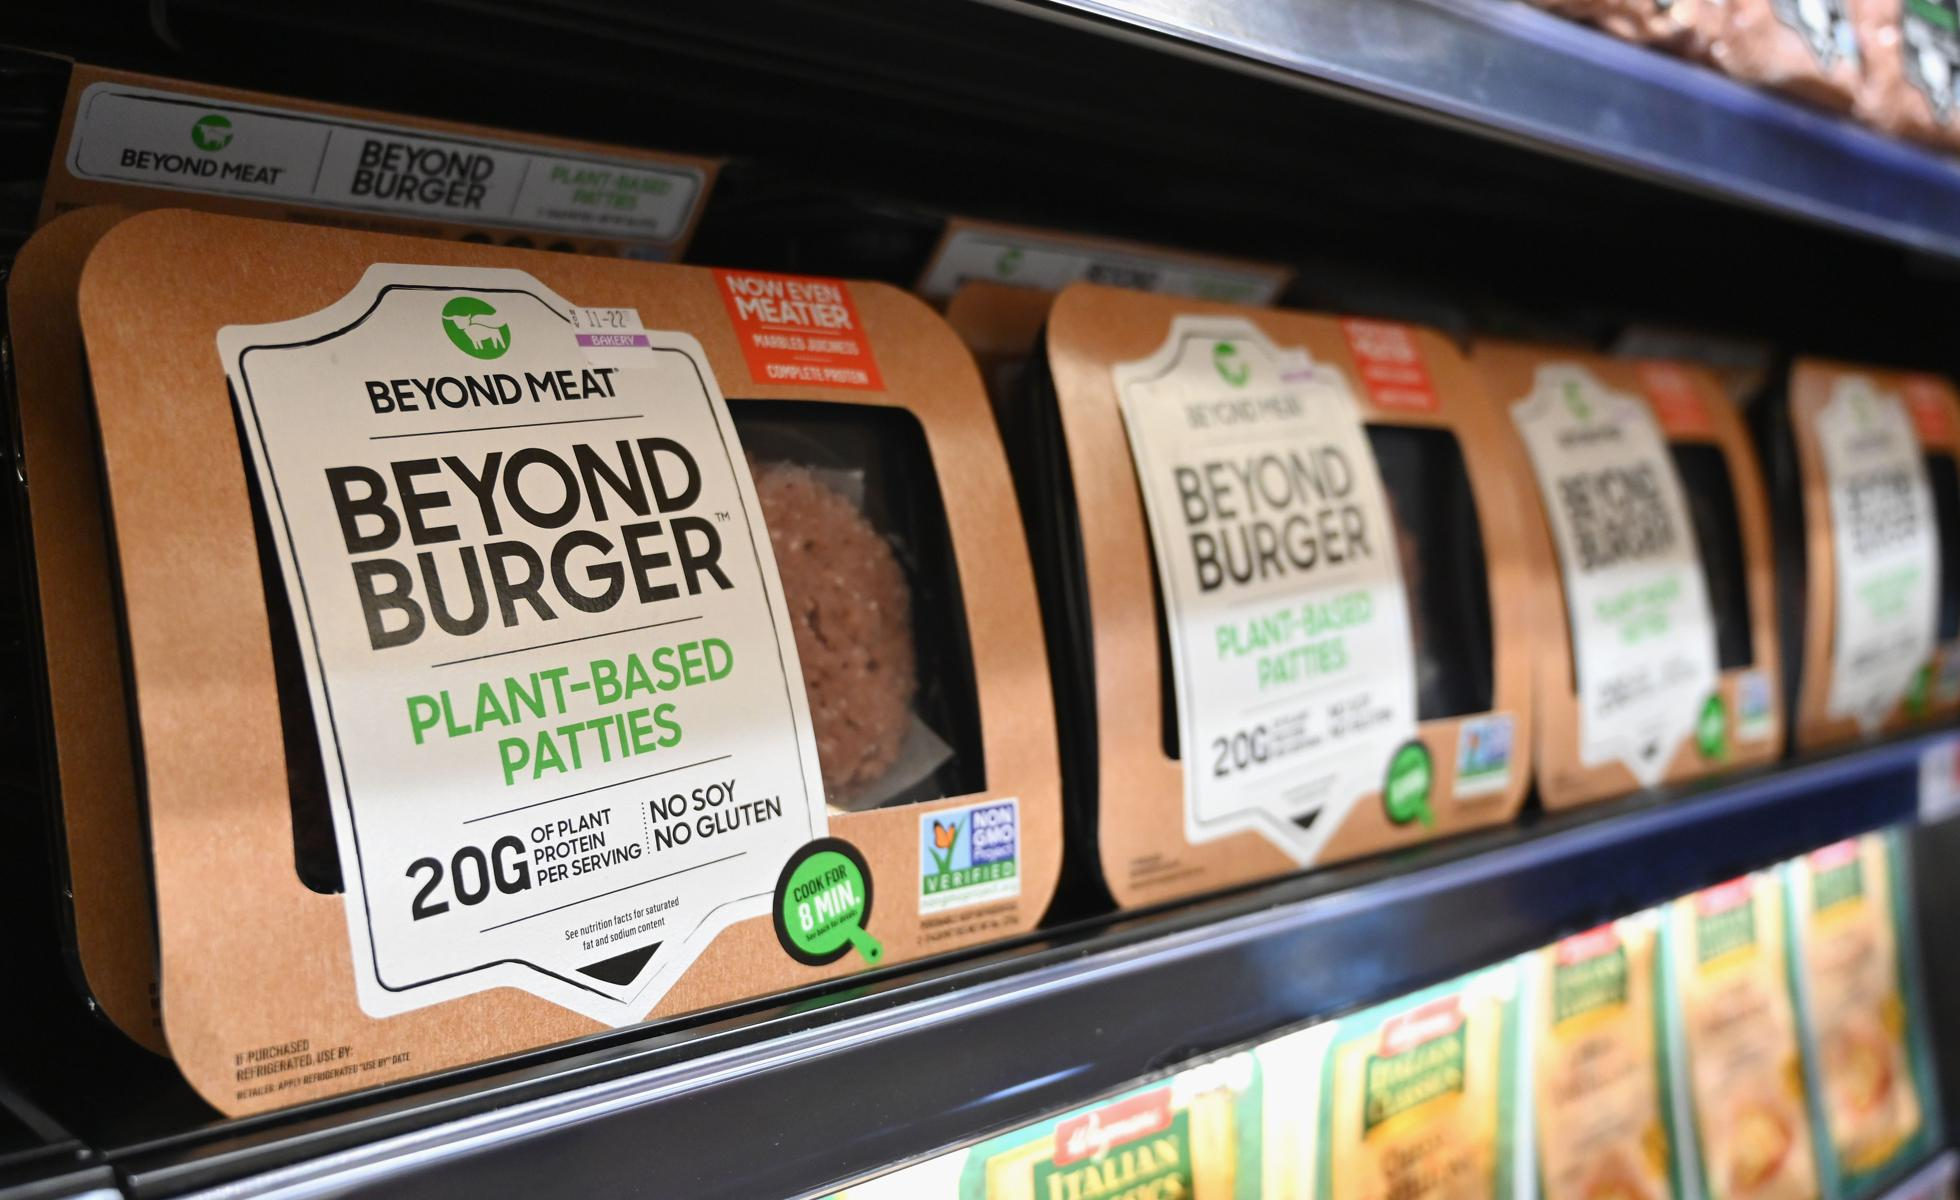 Beyond Meat is expected to hit record year-end revenue figures when it reports fourth-quarter earnings on Thursday after the close of markets.